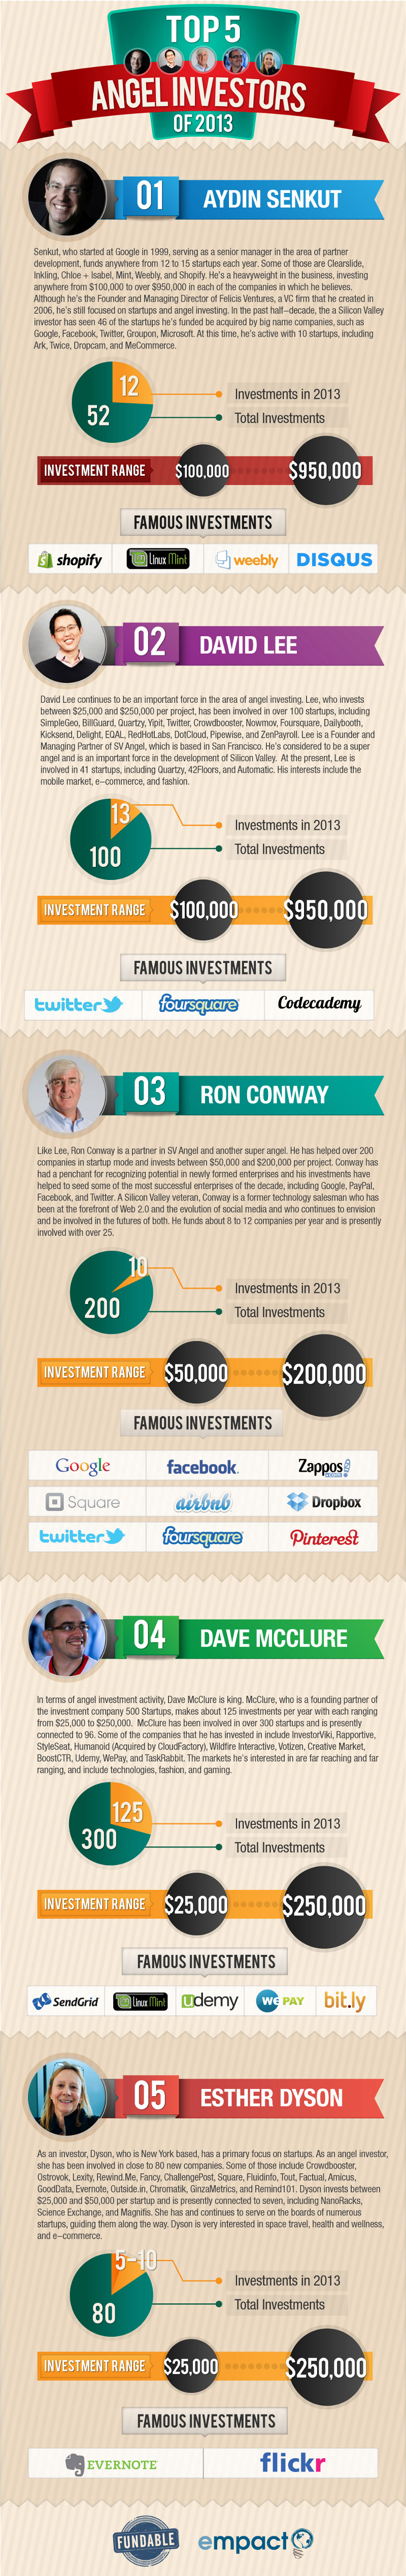 Top-5-Angel-Investors